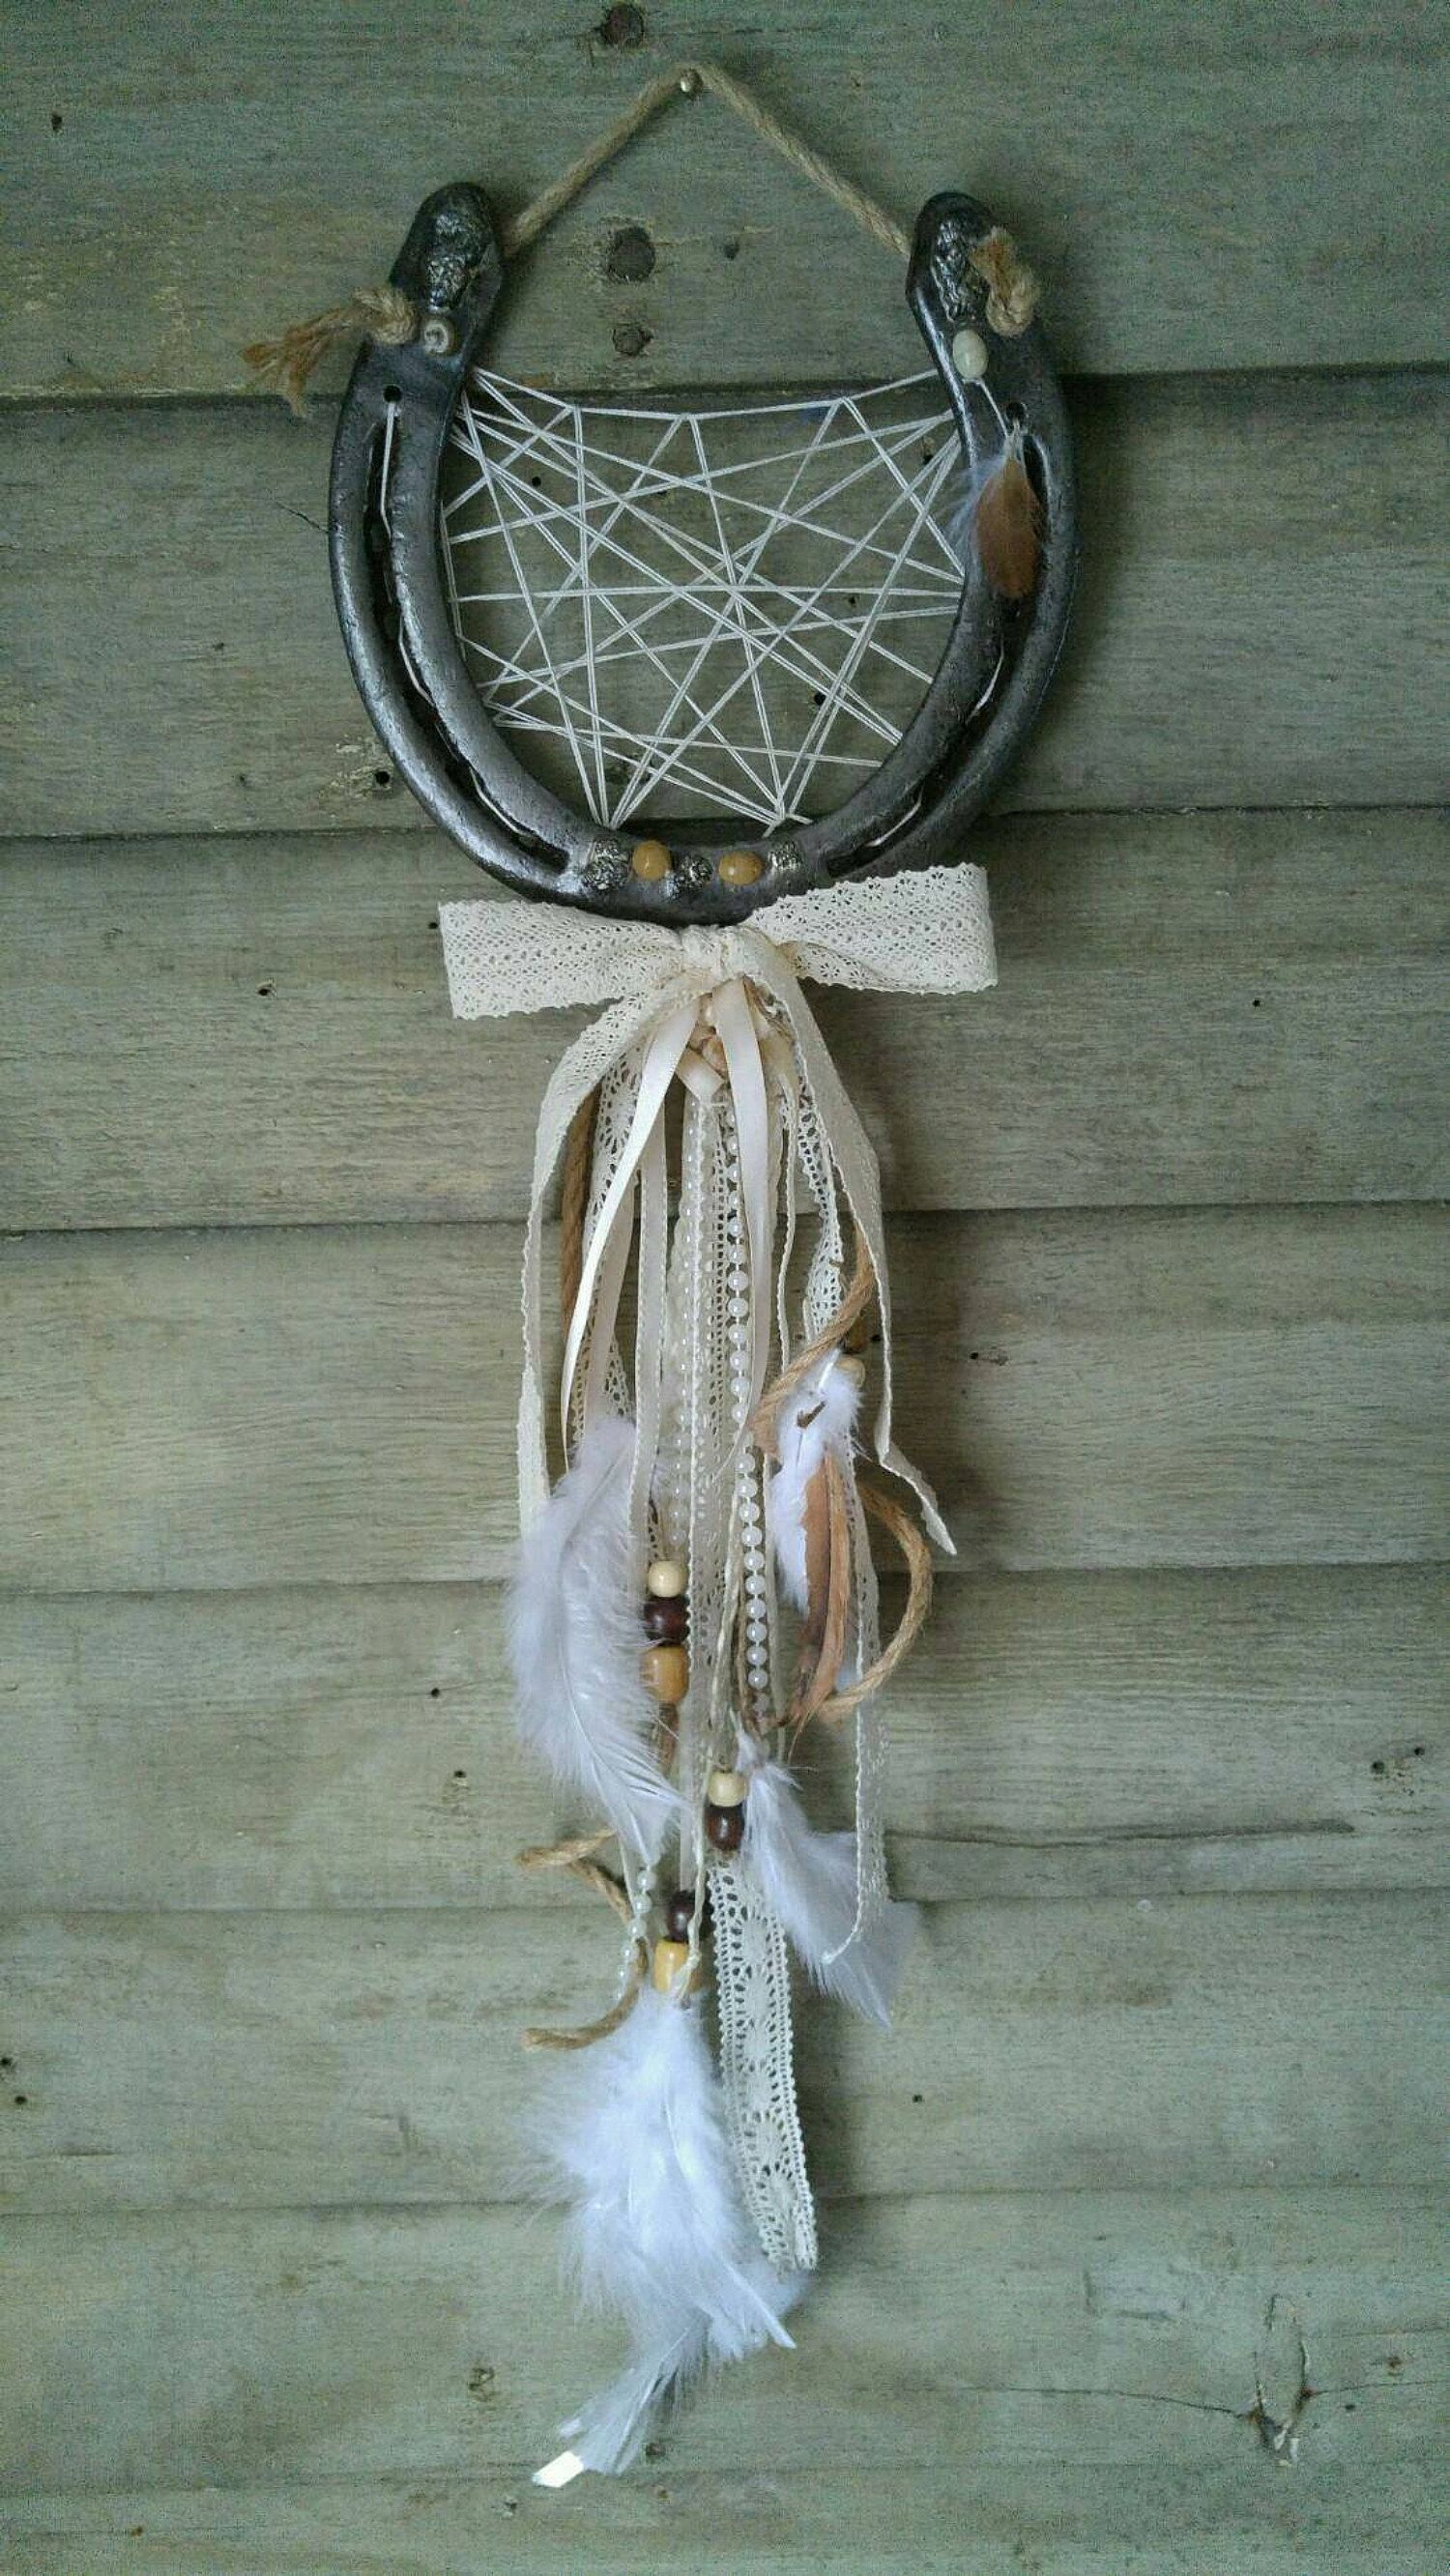 A Rustic Horseshoe Wedding Luck Catcher A Beautiful Home Decor